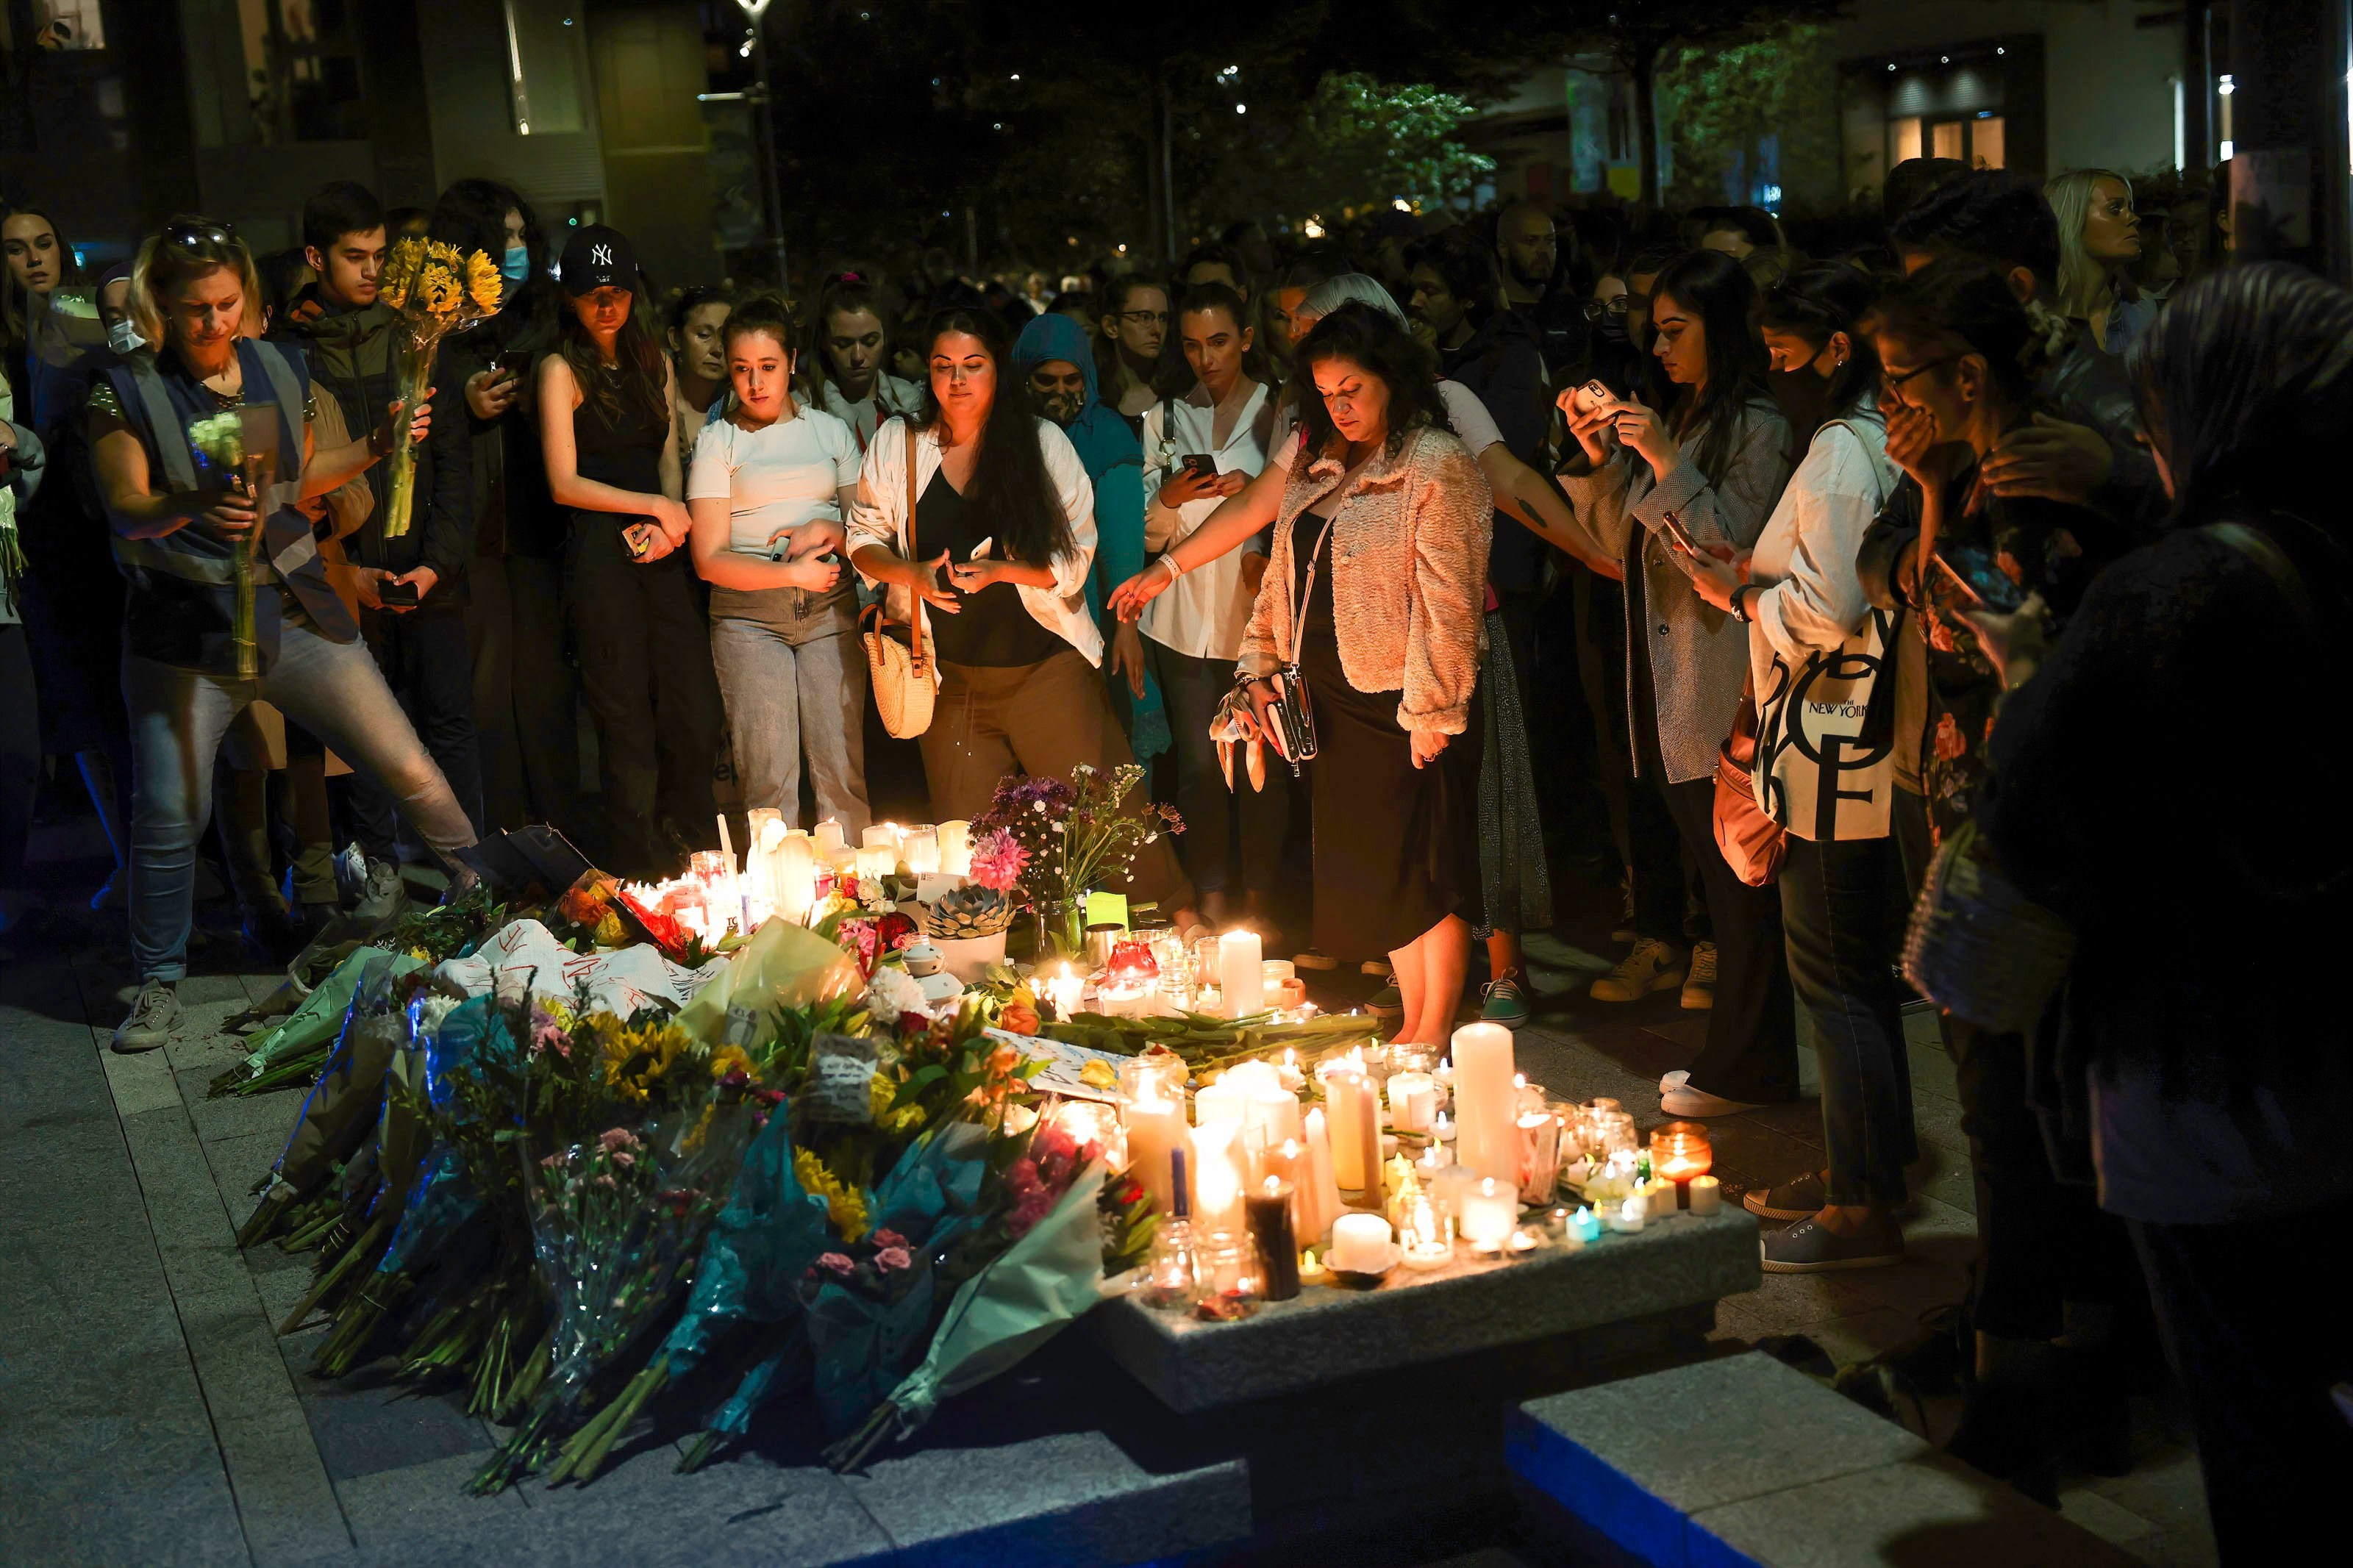 Participants are seen placing lit candles and flowers during